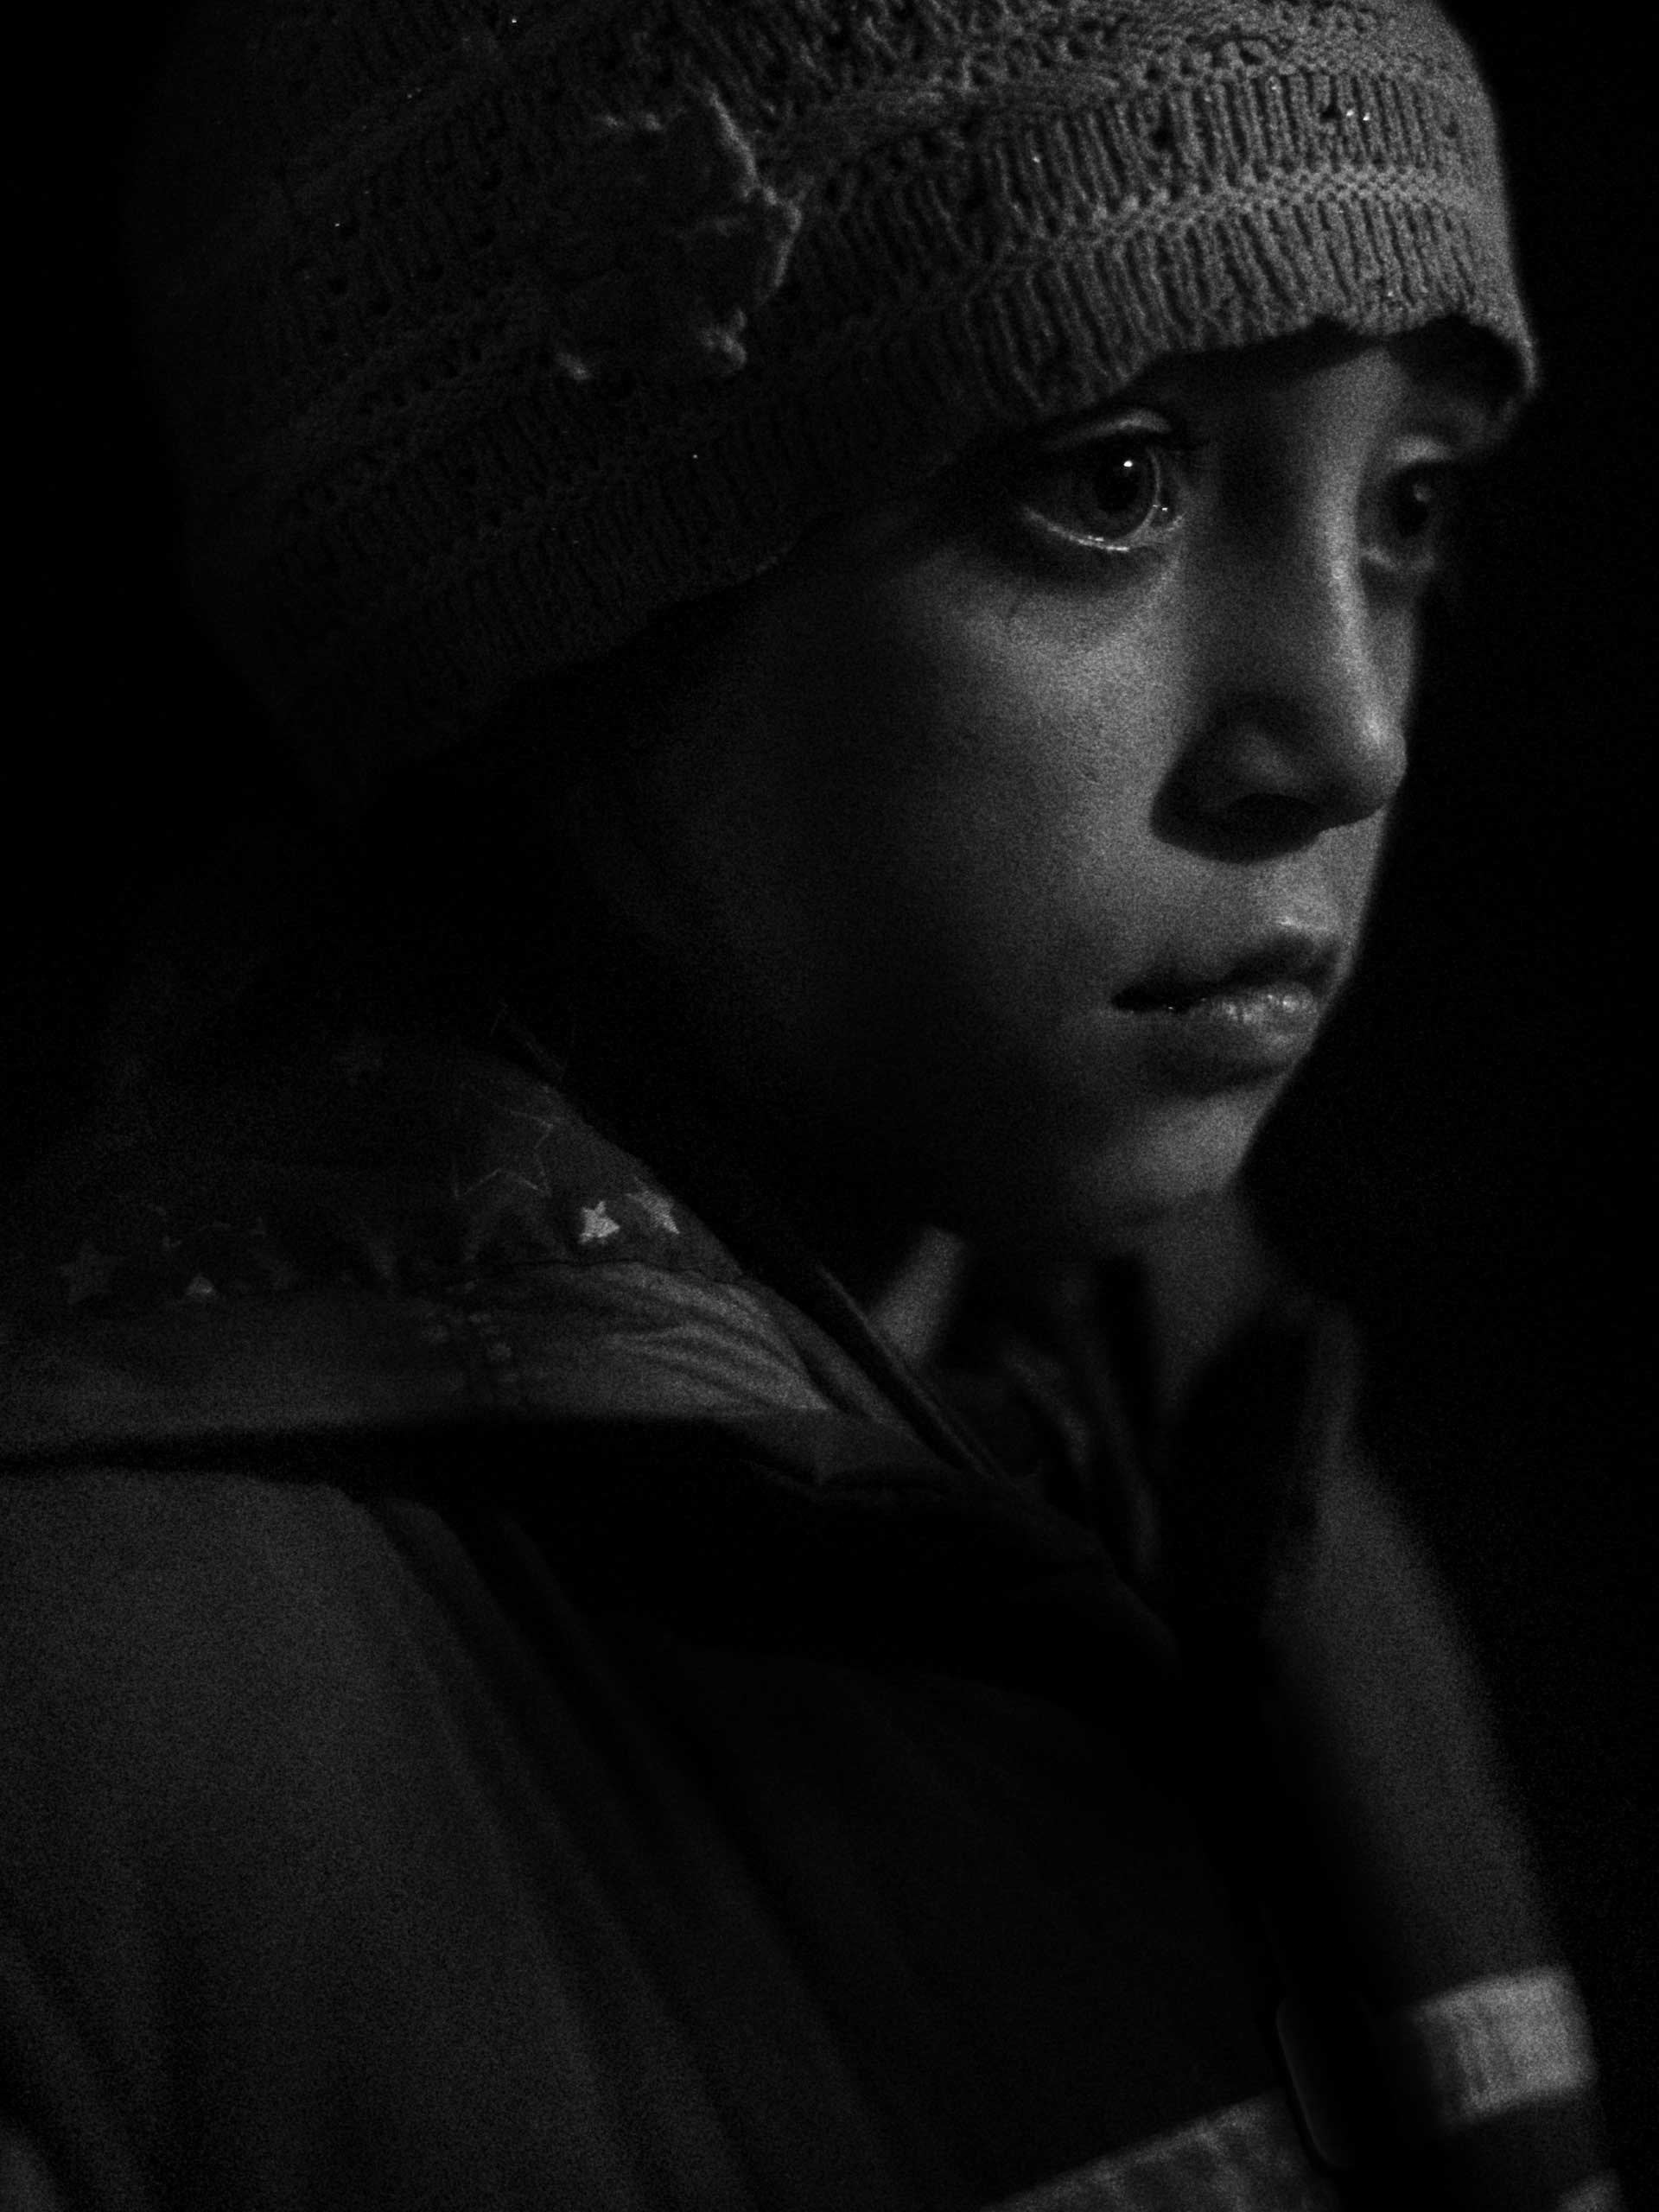 Raisa, 8 years old, is seen in a bunker. Over 150 people live in a network of rooms underneath the town hall. Schools have stopped operating since the conflict began with several school buildings themselves becoming targets of shelling, although neither side has claimed responsibility for these strikes. Donetsk, Petrovsky District of Ukraine. Nov. 1, 2014.